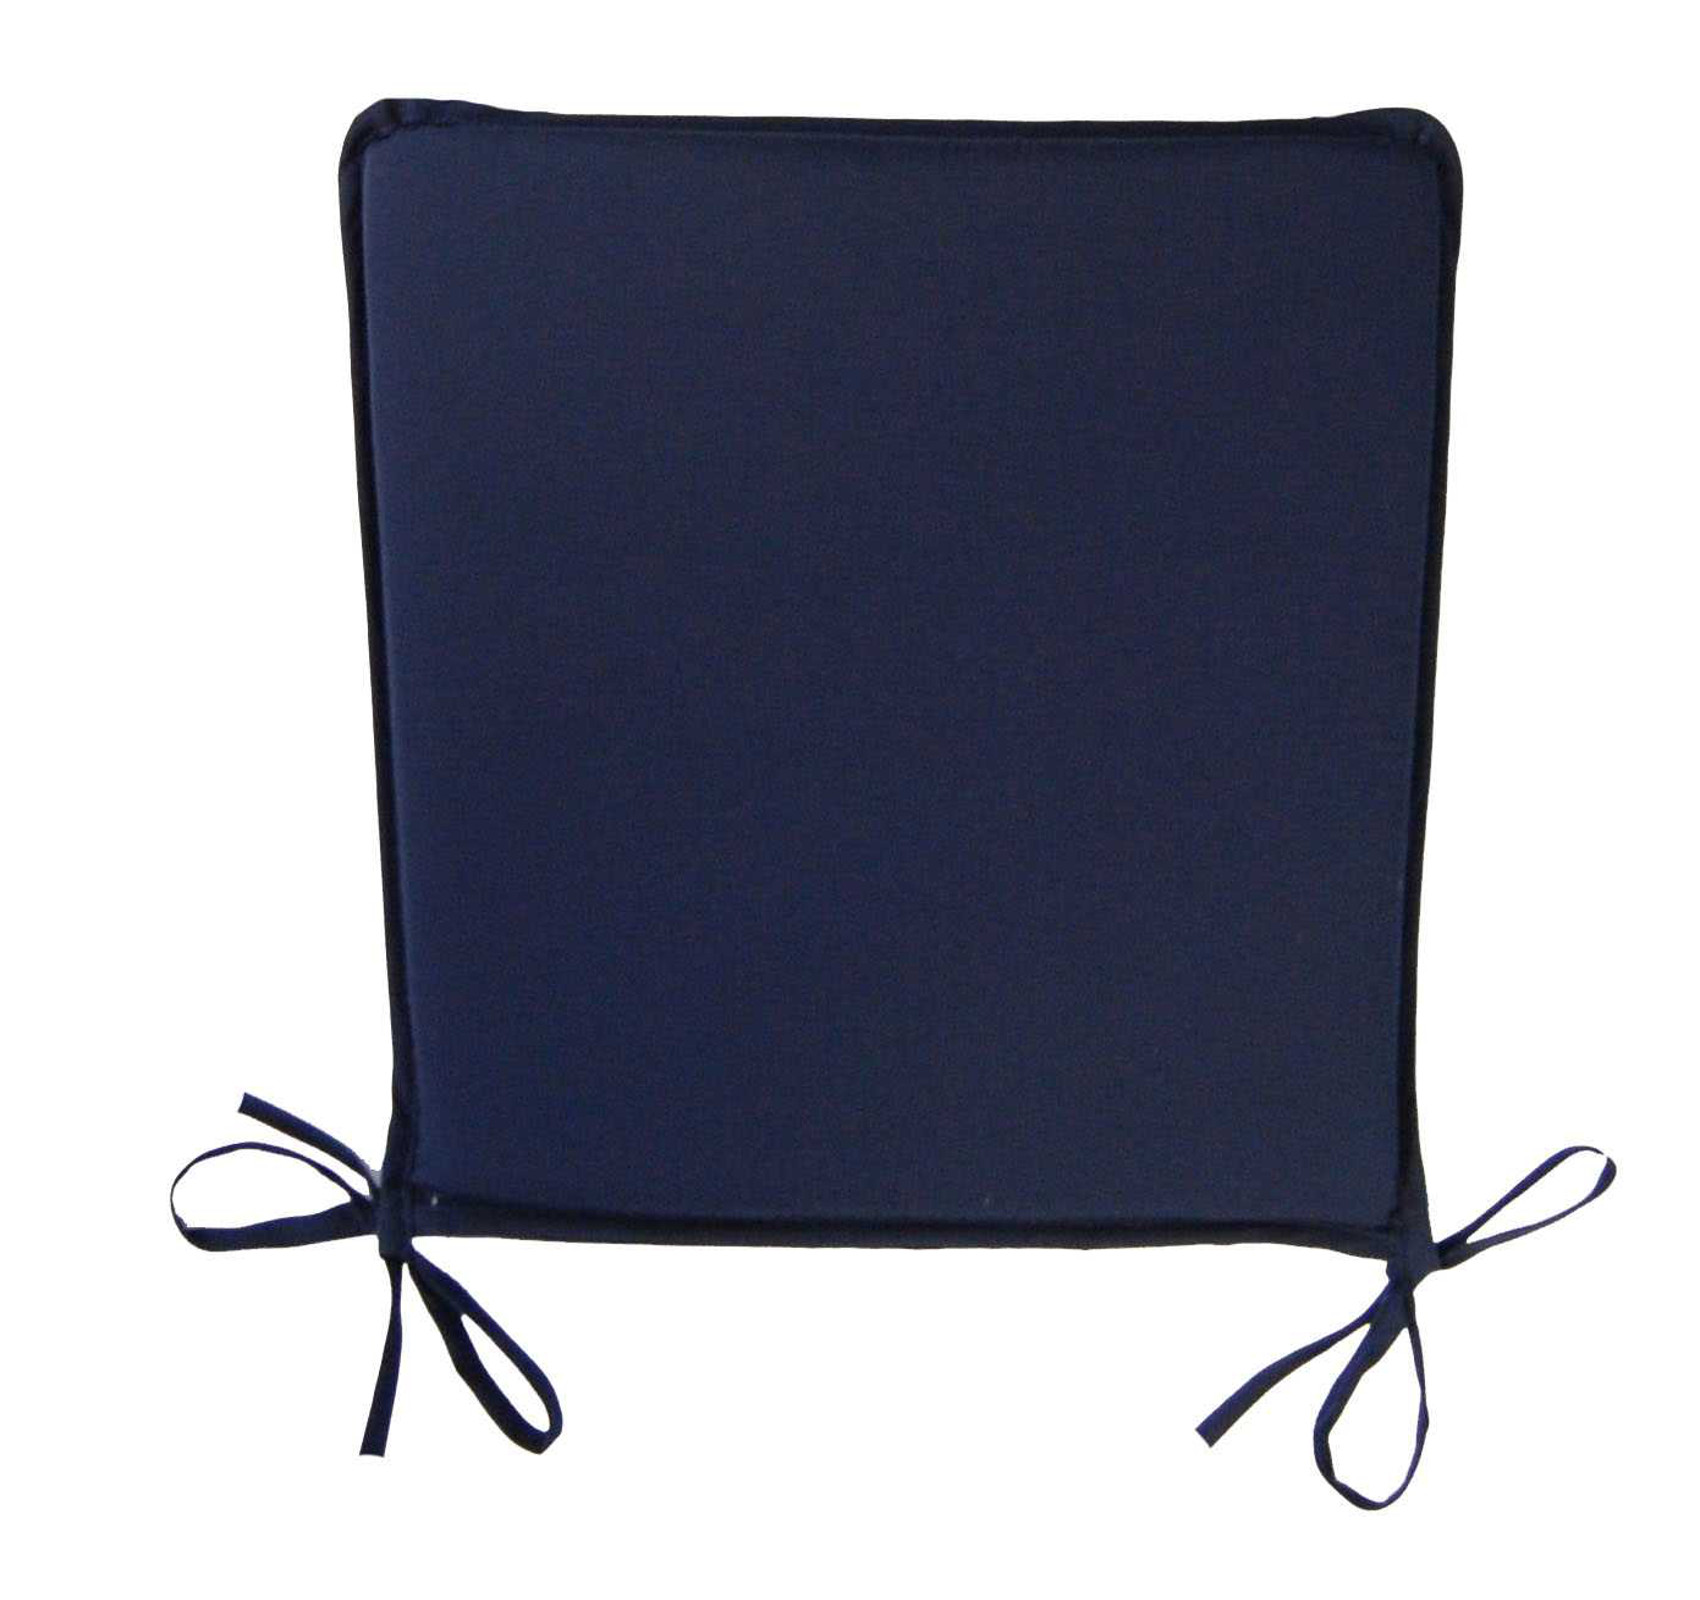 Plain Square Seat Pad Outdoor Garden Dining Kitchen Chair  : square seat pad navy blue from www.ebay.com size 1700 x 1600 jpeg 232kB